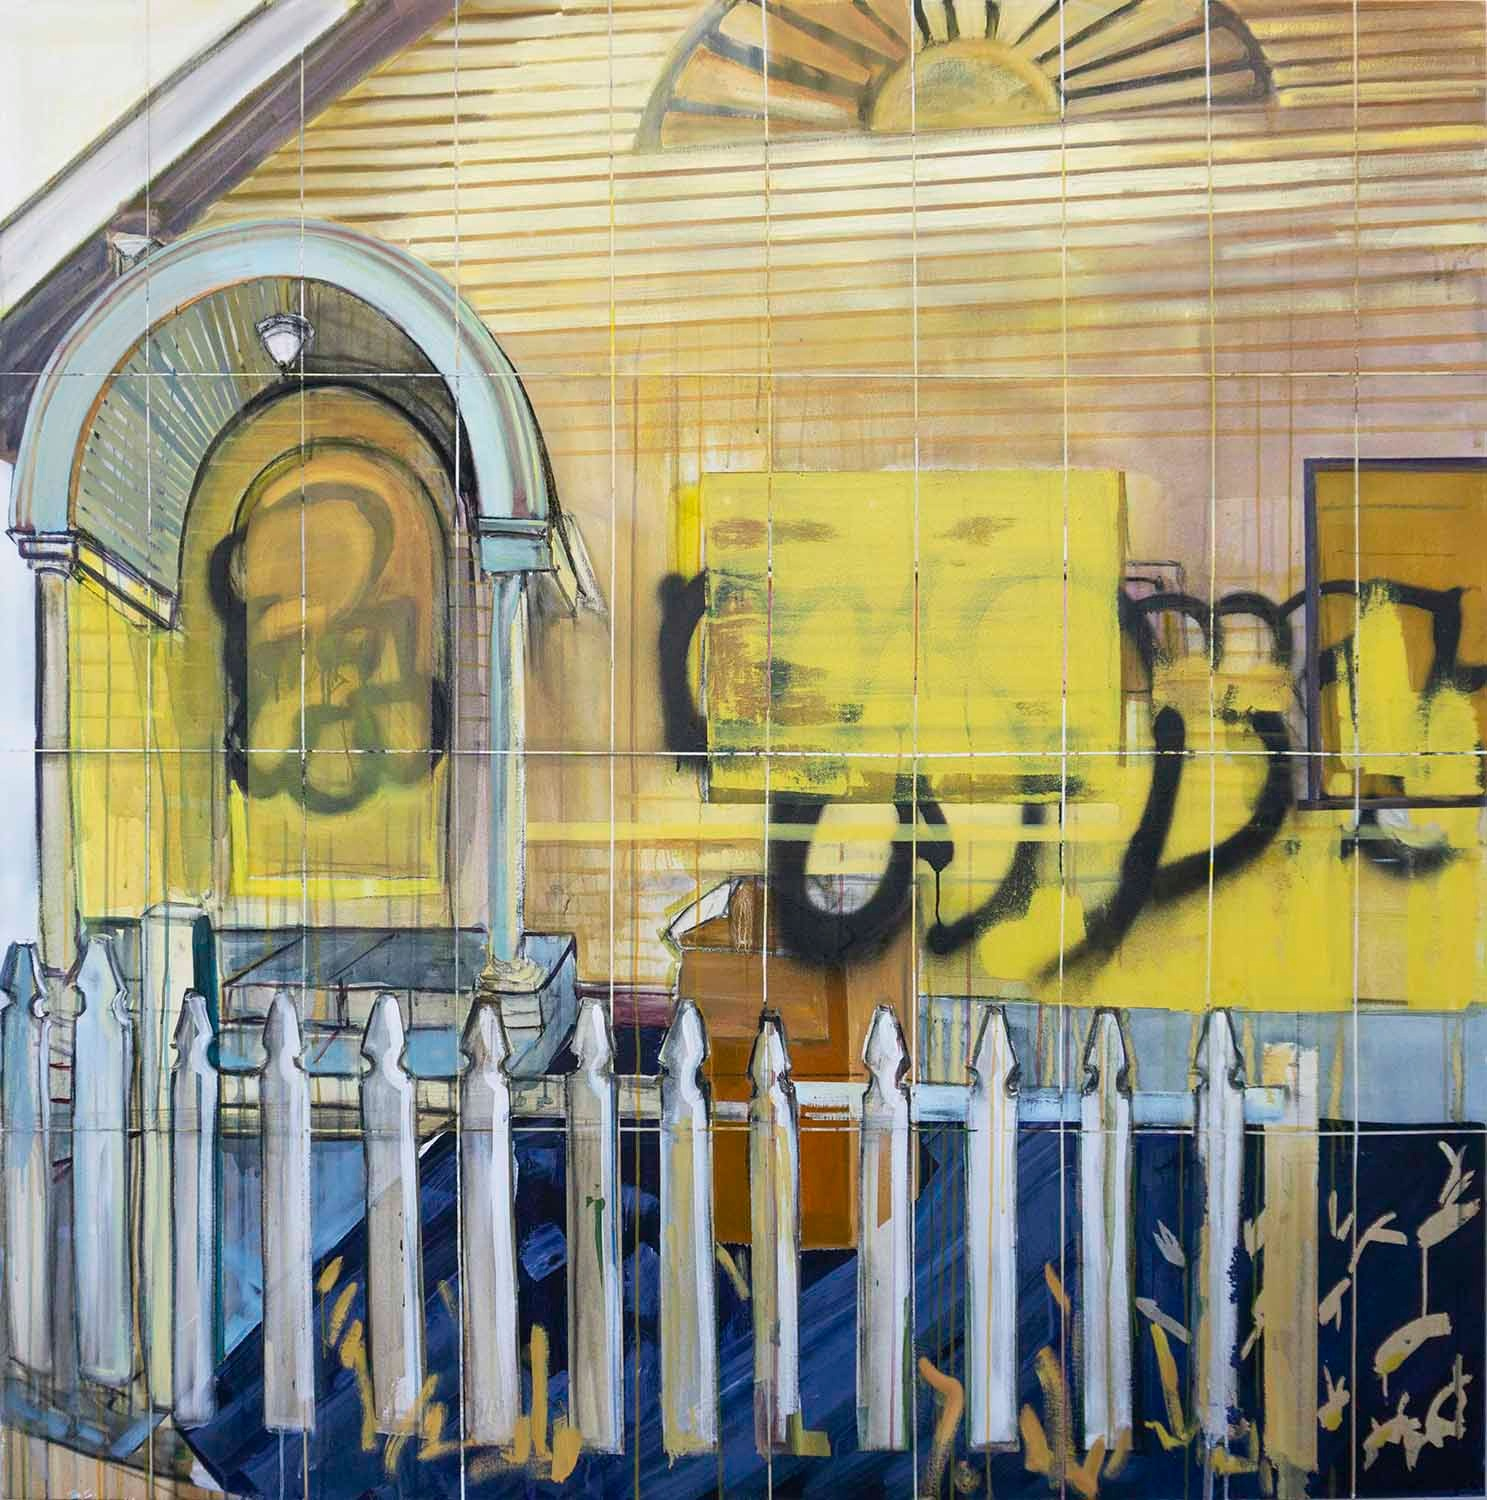 Yellow House (Potential 40 Units) , acrylic, oil and spray paint on canvas, 72x72 inches, 2019.